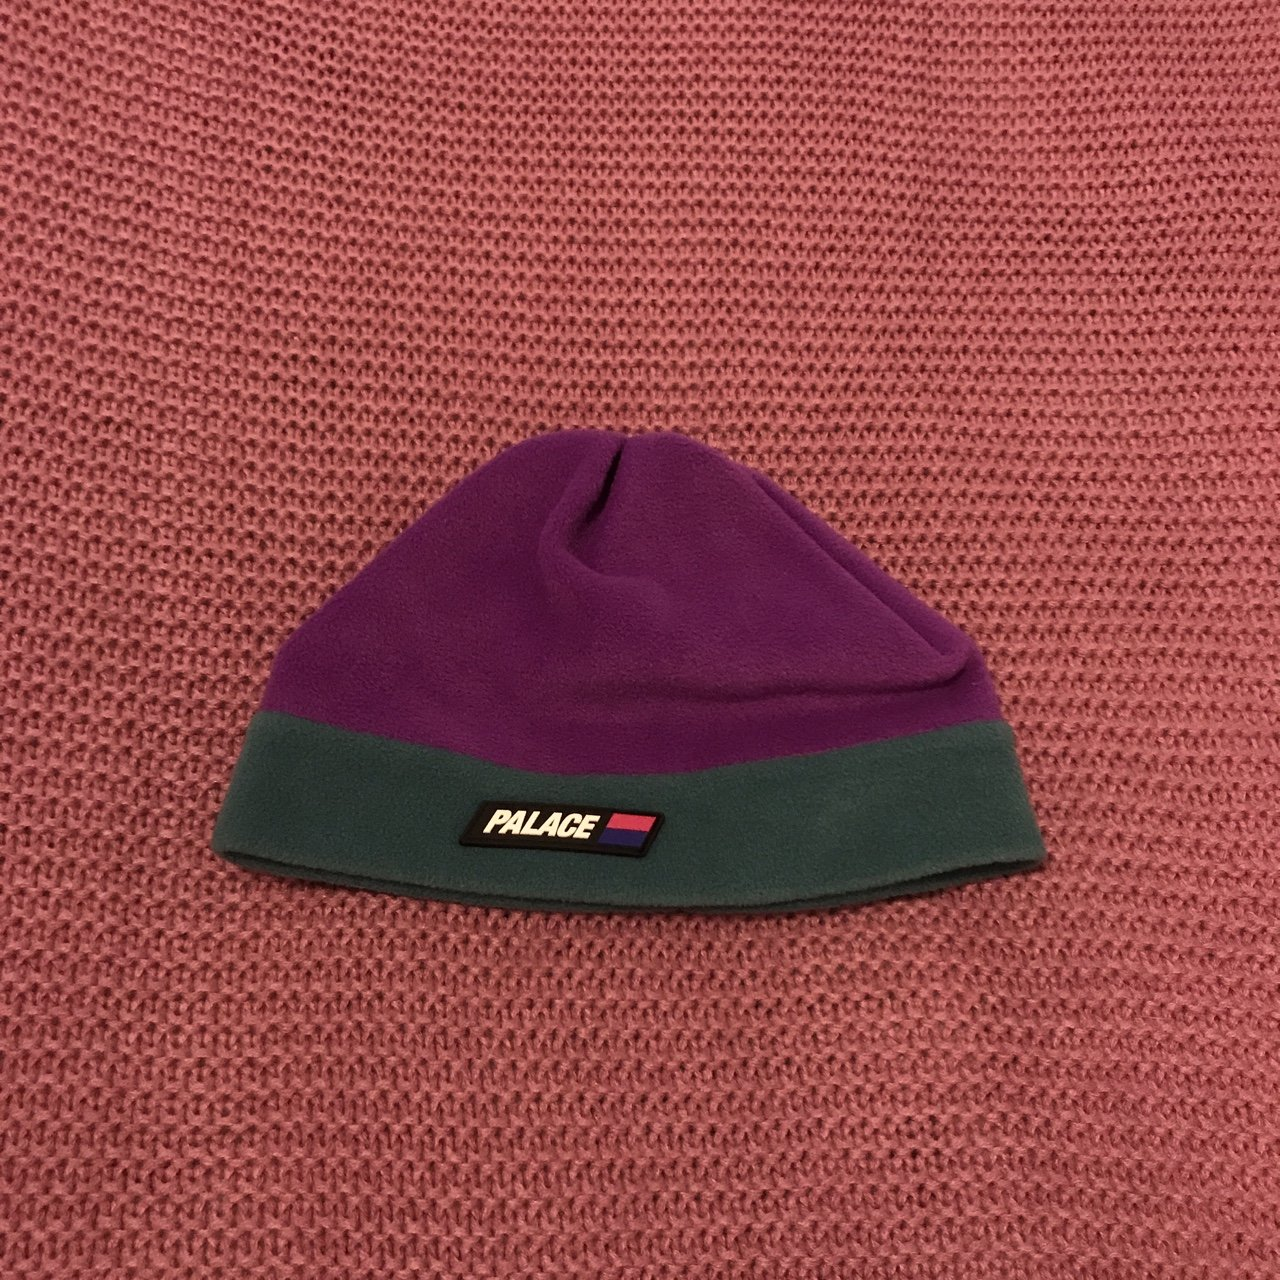 863eeef4937 CAN T POST UNTIL EASTER Palace purple and green fleece Size - Depop